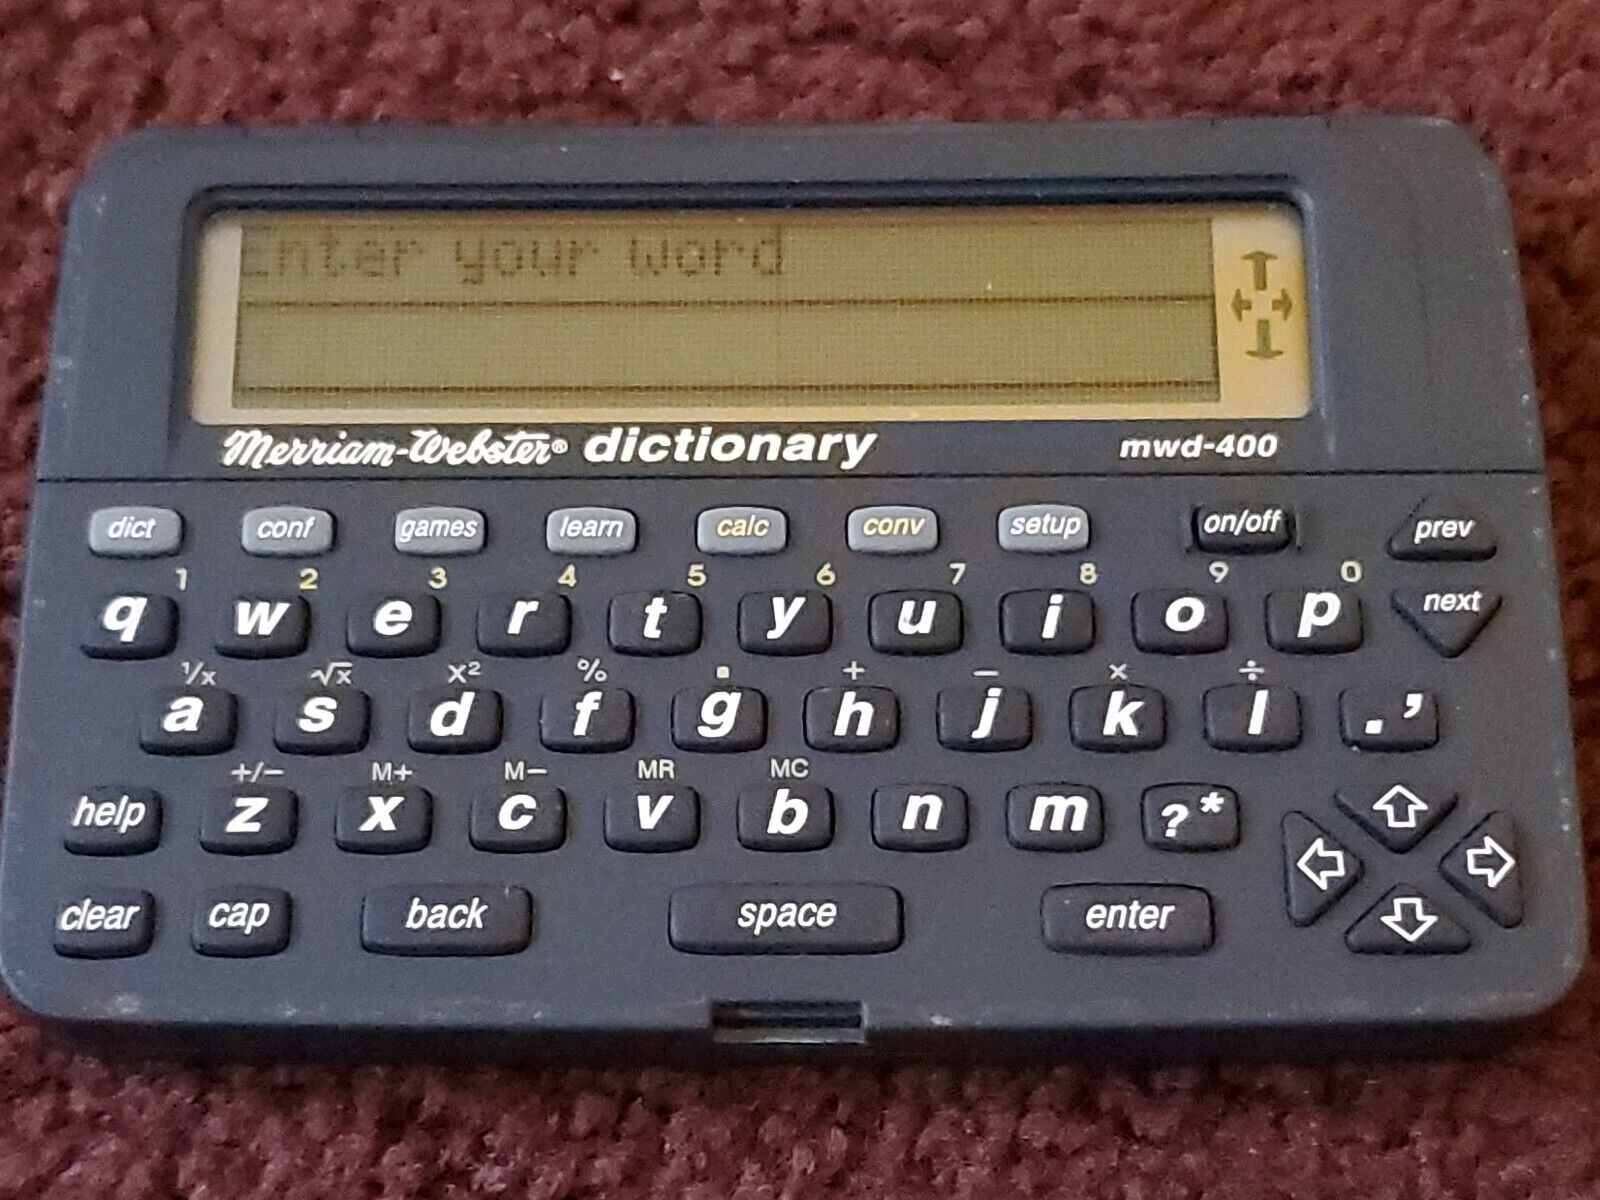 FRANKLIN MWD-400 MERRRIAM WEBSTER ELECTRONIC PROTABLE POCKET DICTIONARY W/ GAMES